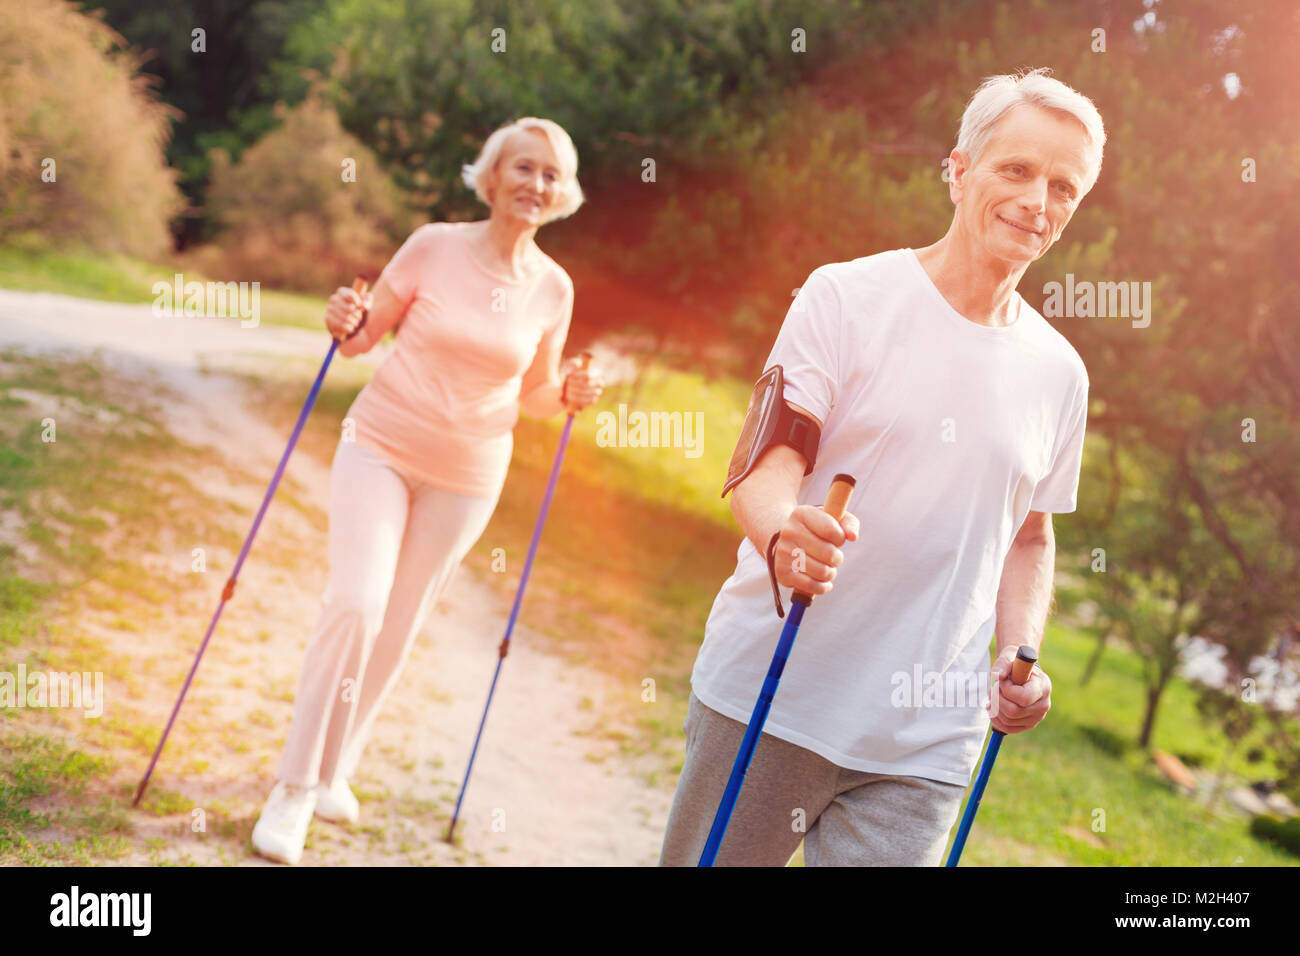 Optimistic elderly family walking with crutches in fresh air - Stock Image